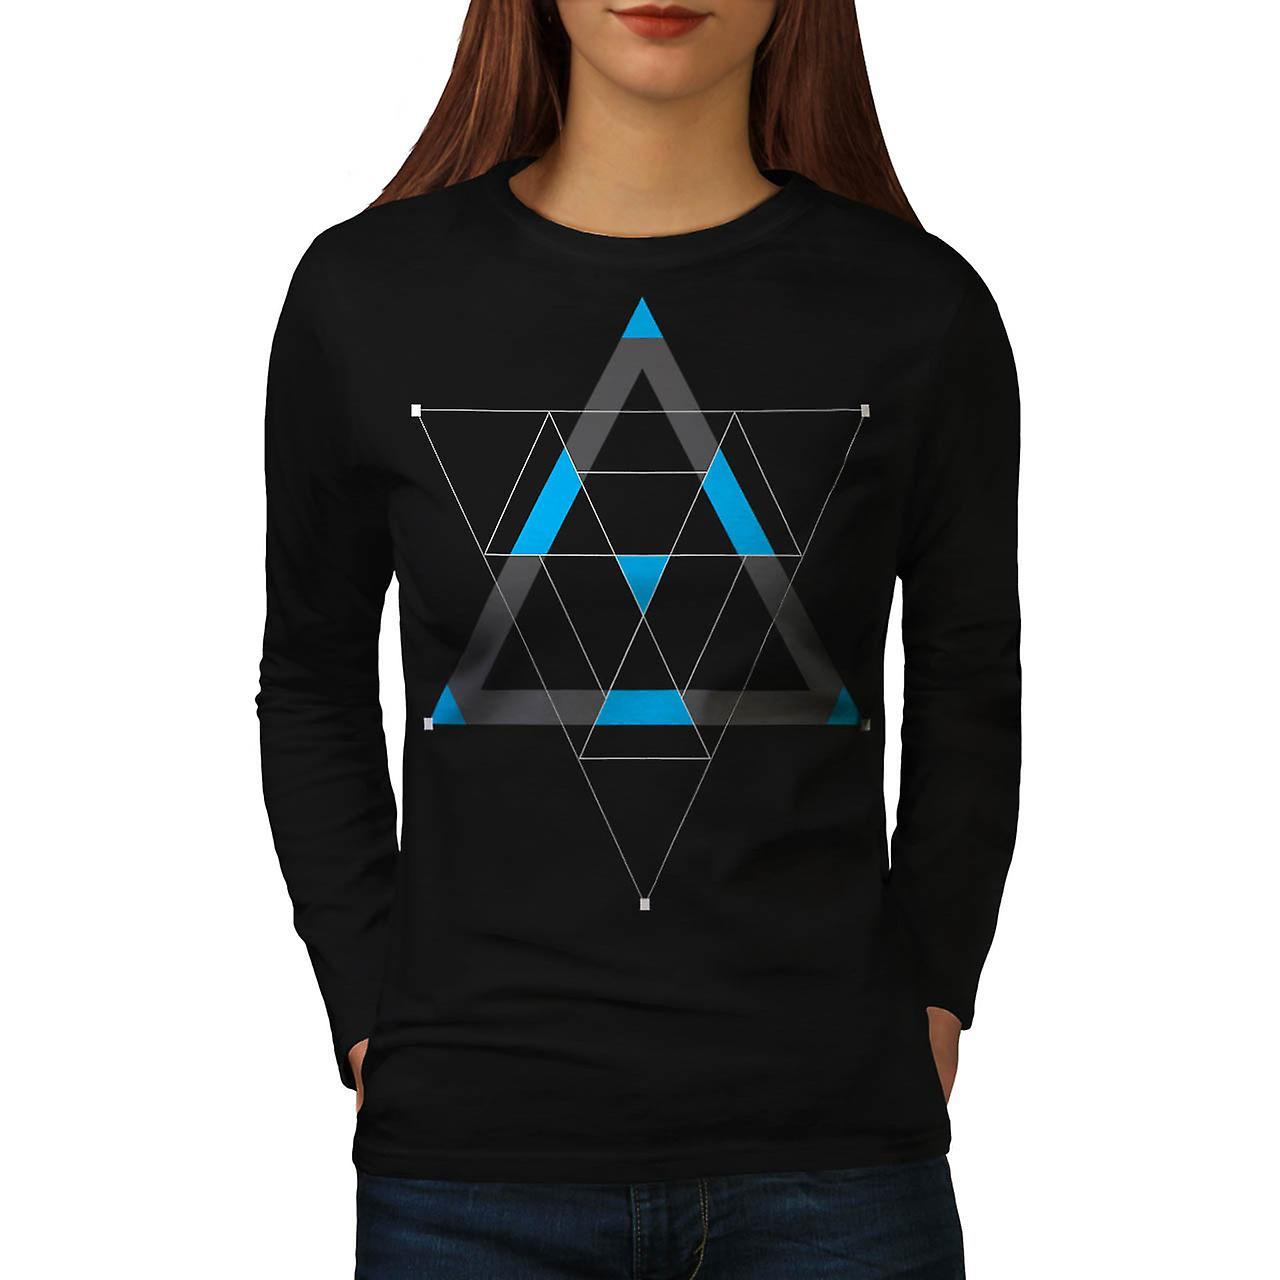 Kaleidoscope Dream Life Hypnotic Women Black Long Sleeve T-shirt | Wellcoda